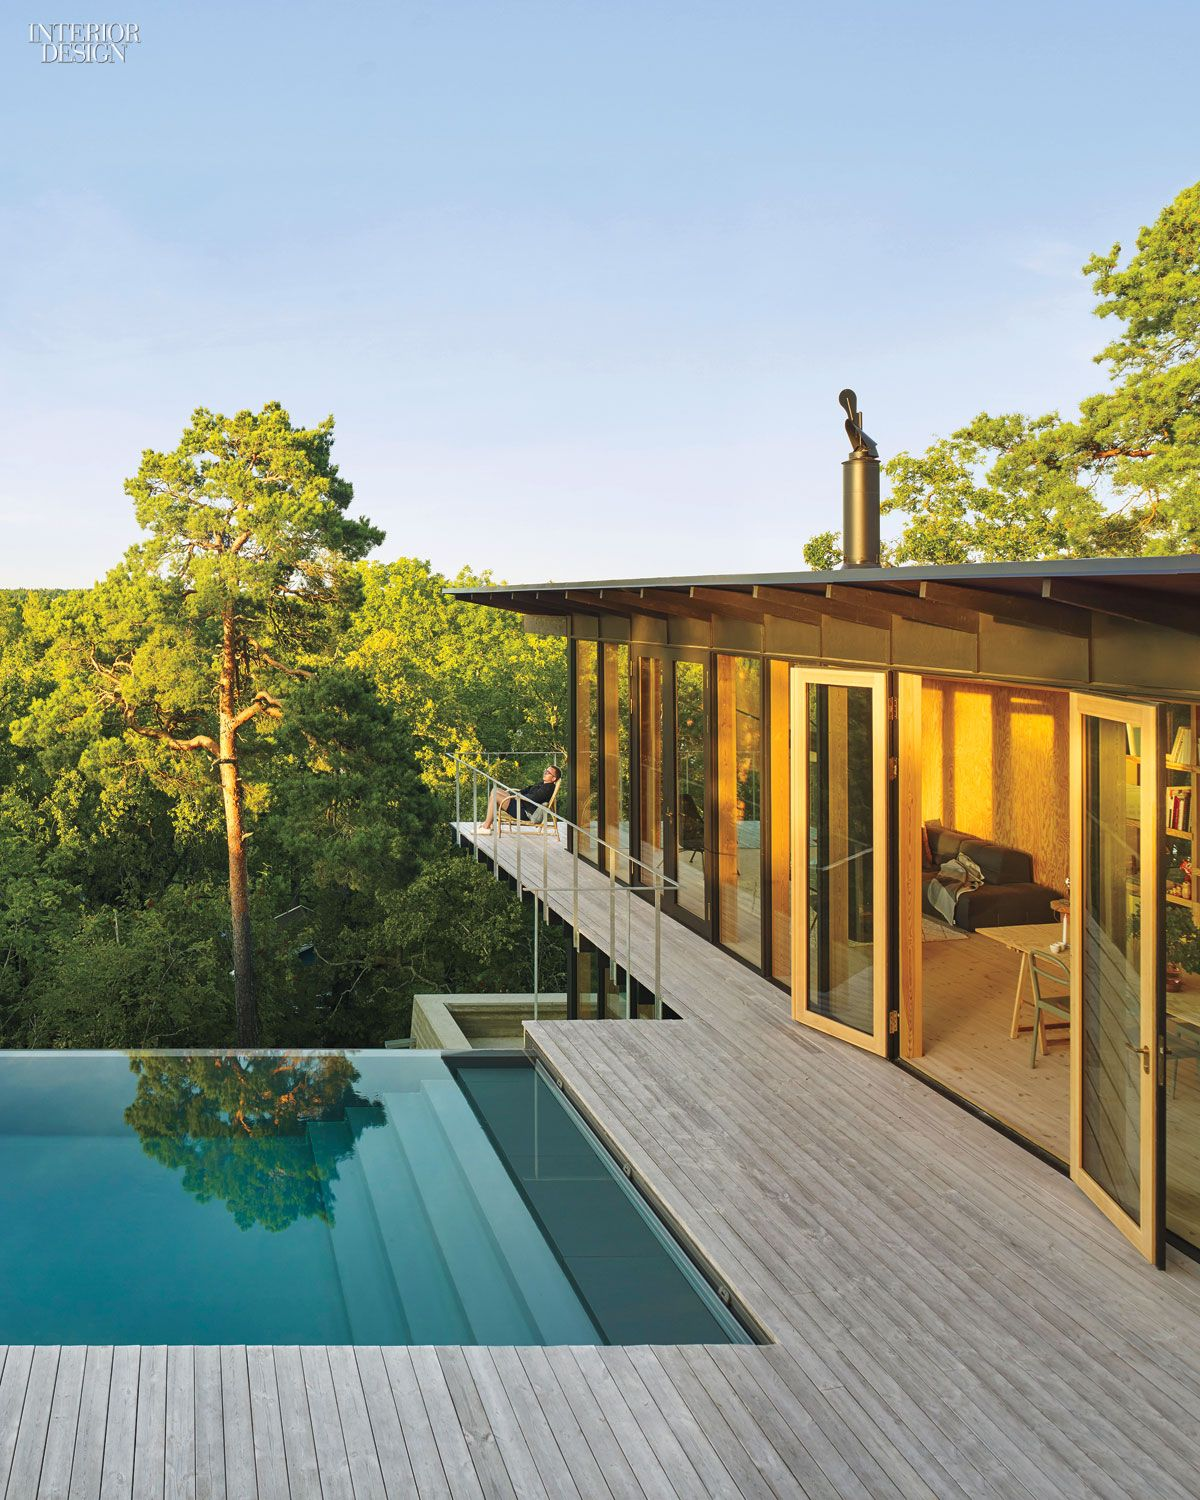 The Success Of Andreas Martin Löf S House Near Stockholm Lies In Being Playful And Taking Risks Arkitektur Husdesign Hus